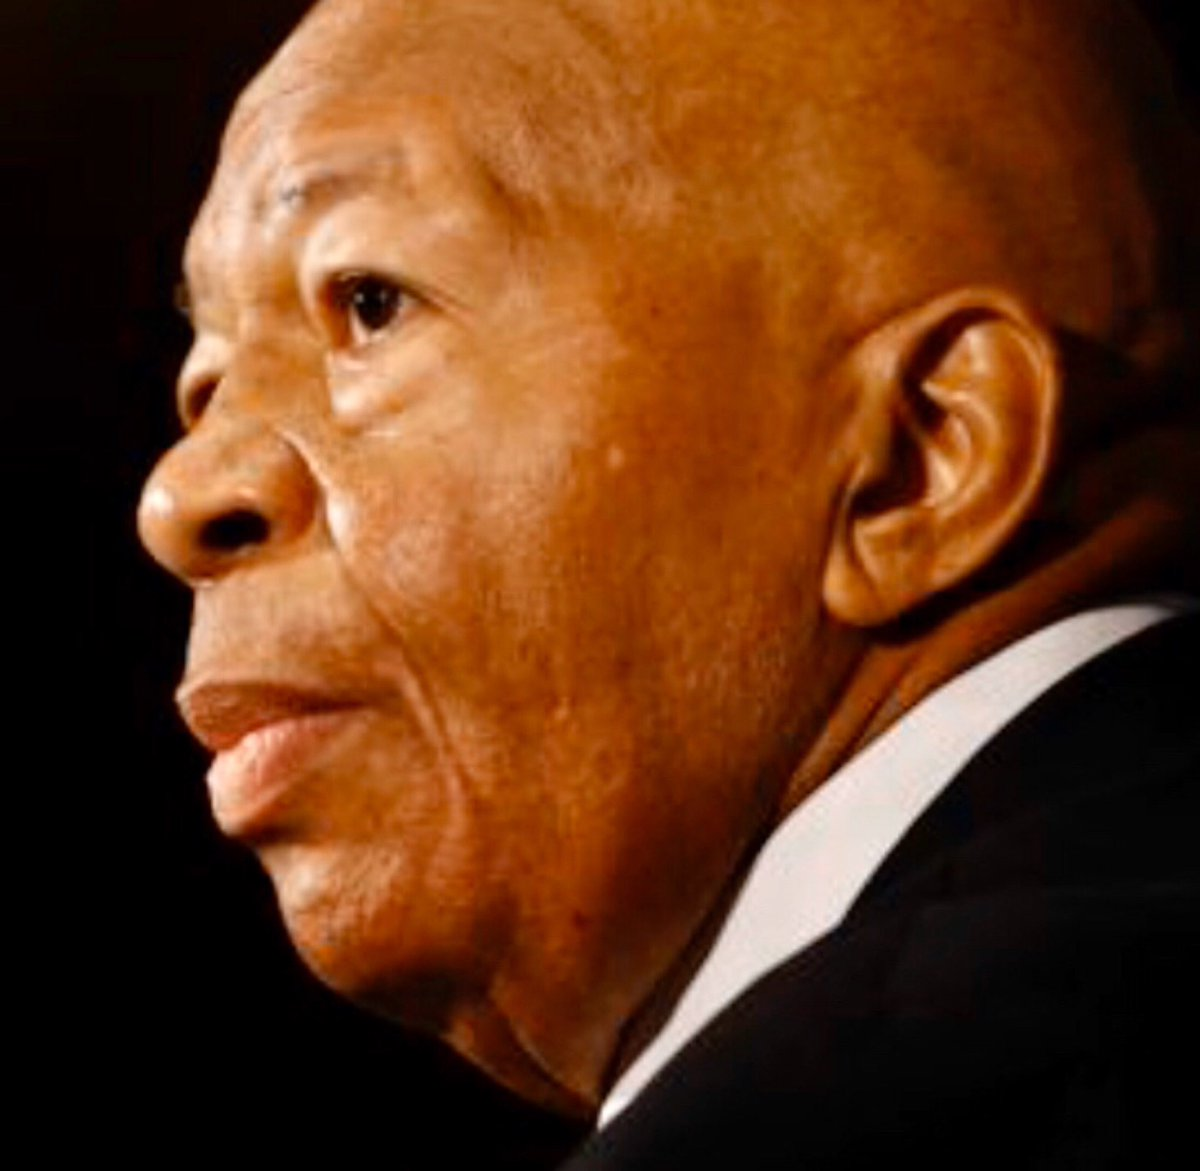 A champion for the poor and downtrodden, Rep. Elijah Cummings has departed. He strove through decades of service to bring justice and dignity to greater numbers in this world. We honor his life and his work, and pledge to continue his fight. Rest now, great soul.